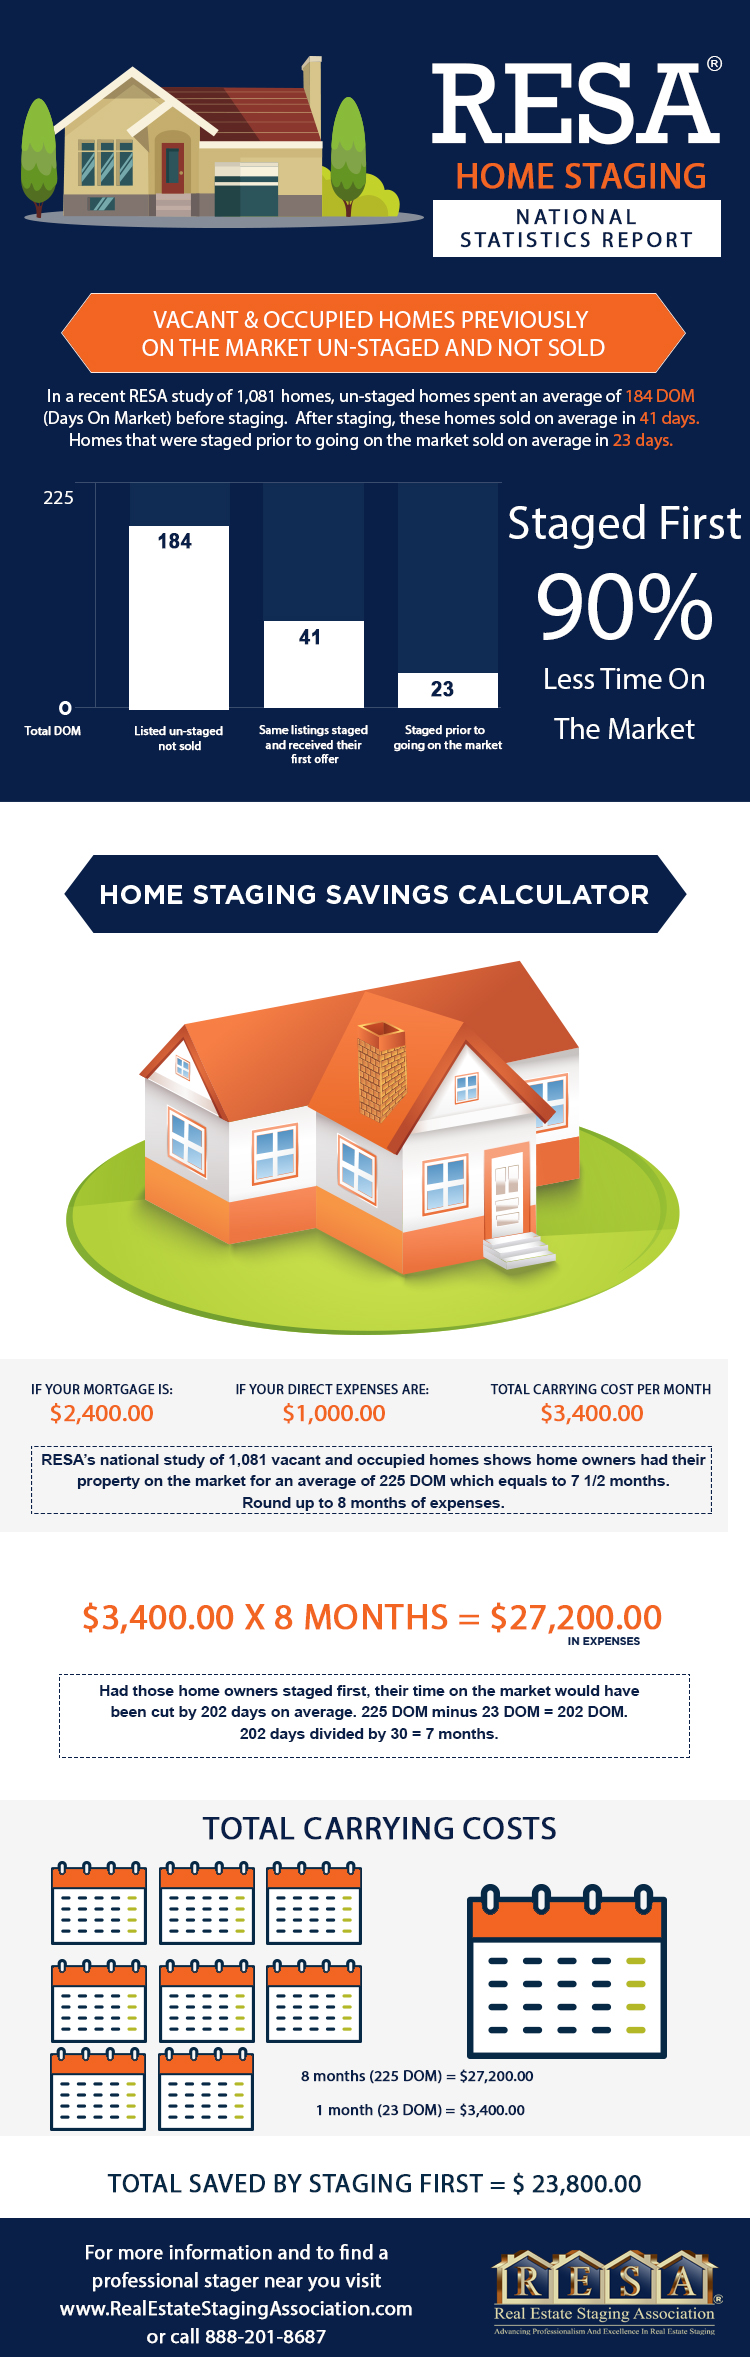 Infographic by: www.realestatestagingassociation.com  Source: http://www.realestatestagingassociation.com/content.aspx?page_id=22&club_id=304550&module_id=164548